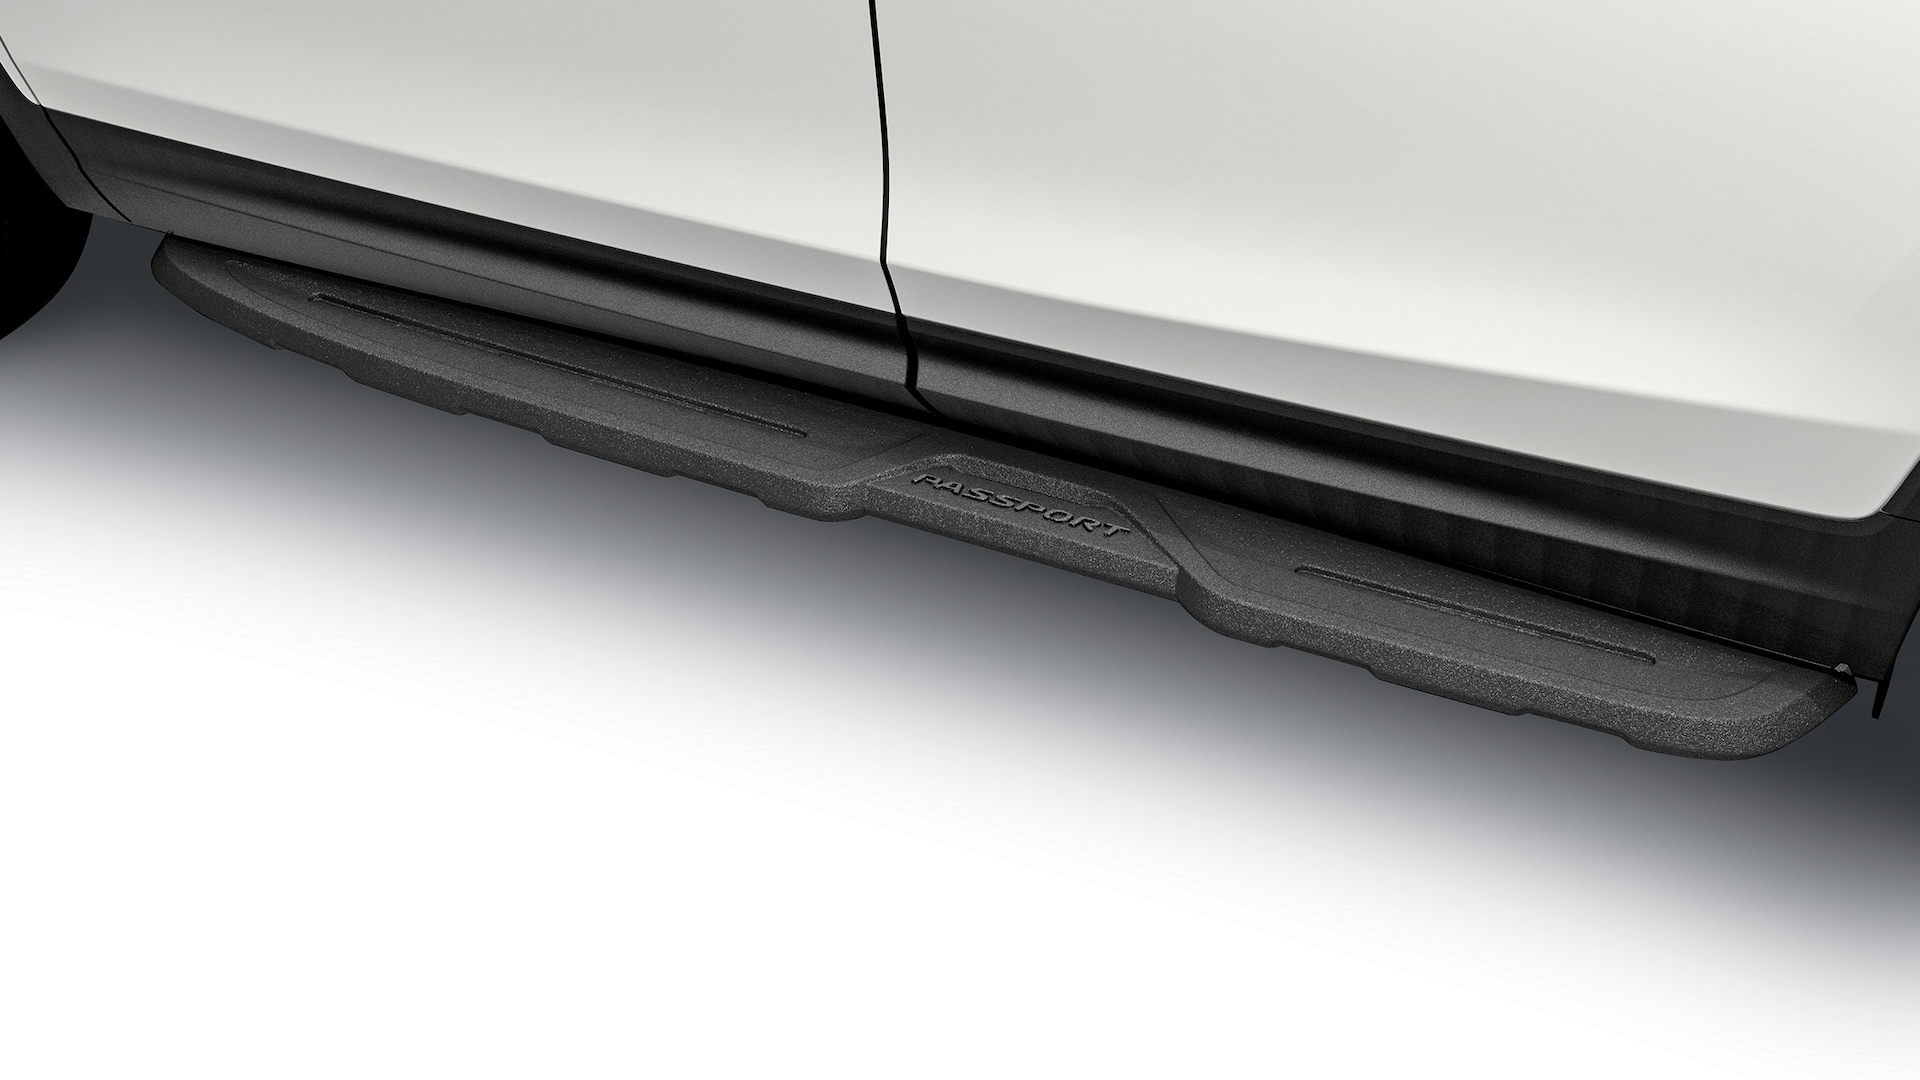 Detail of accessory die-cast running board on the 2019 Honda Passport.